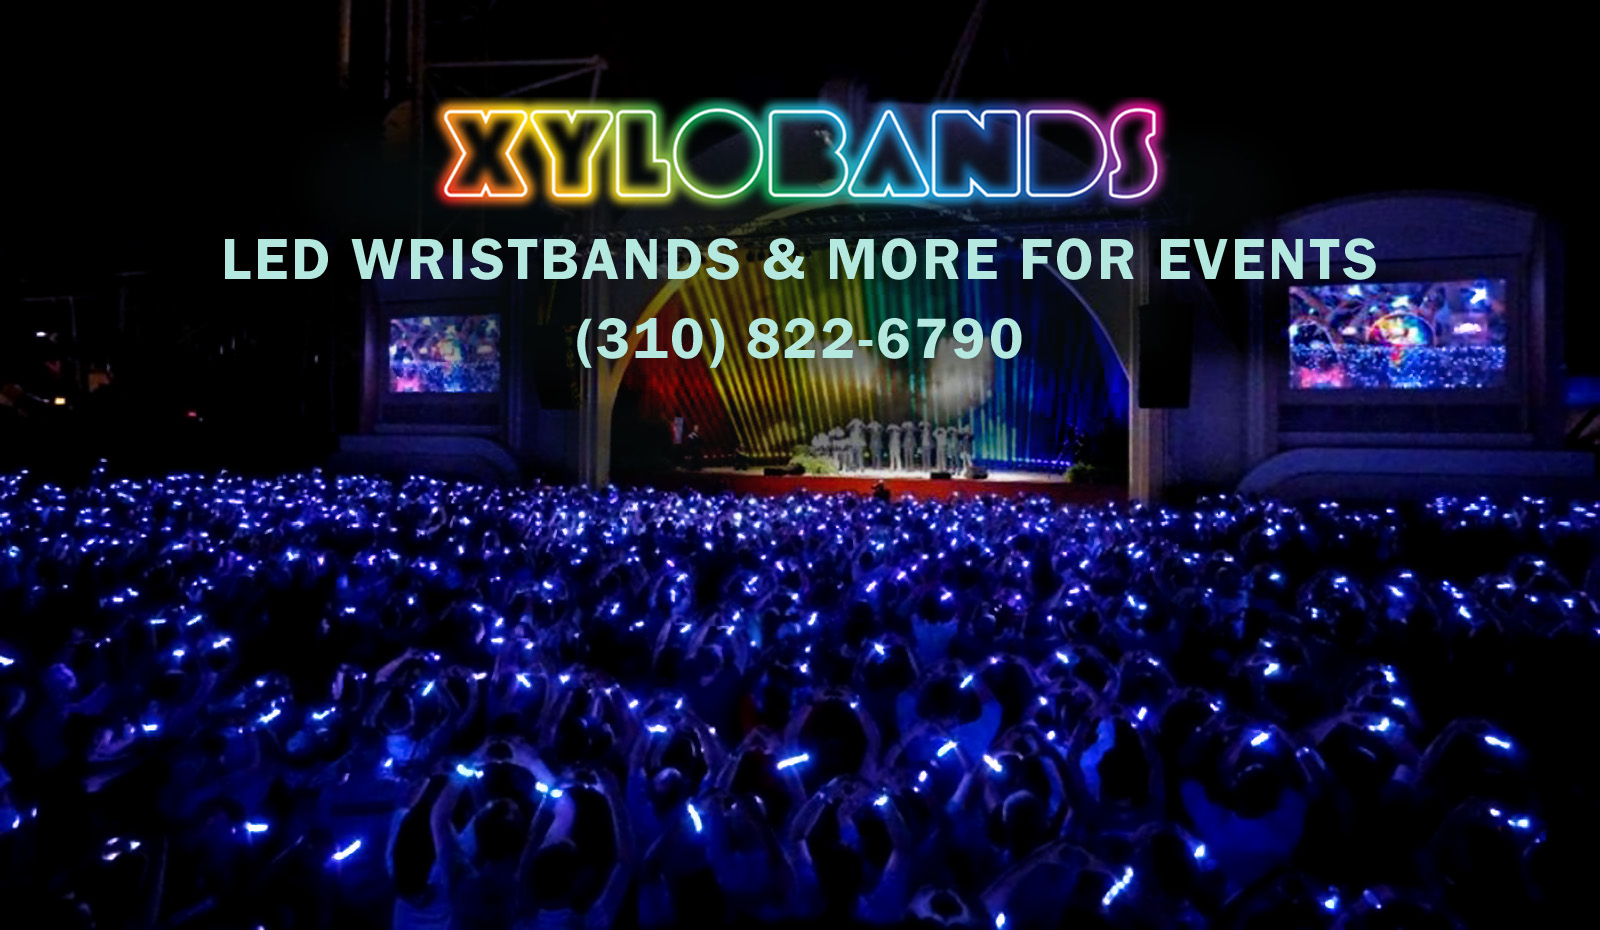 custom-light-up-wristbands-for-events